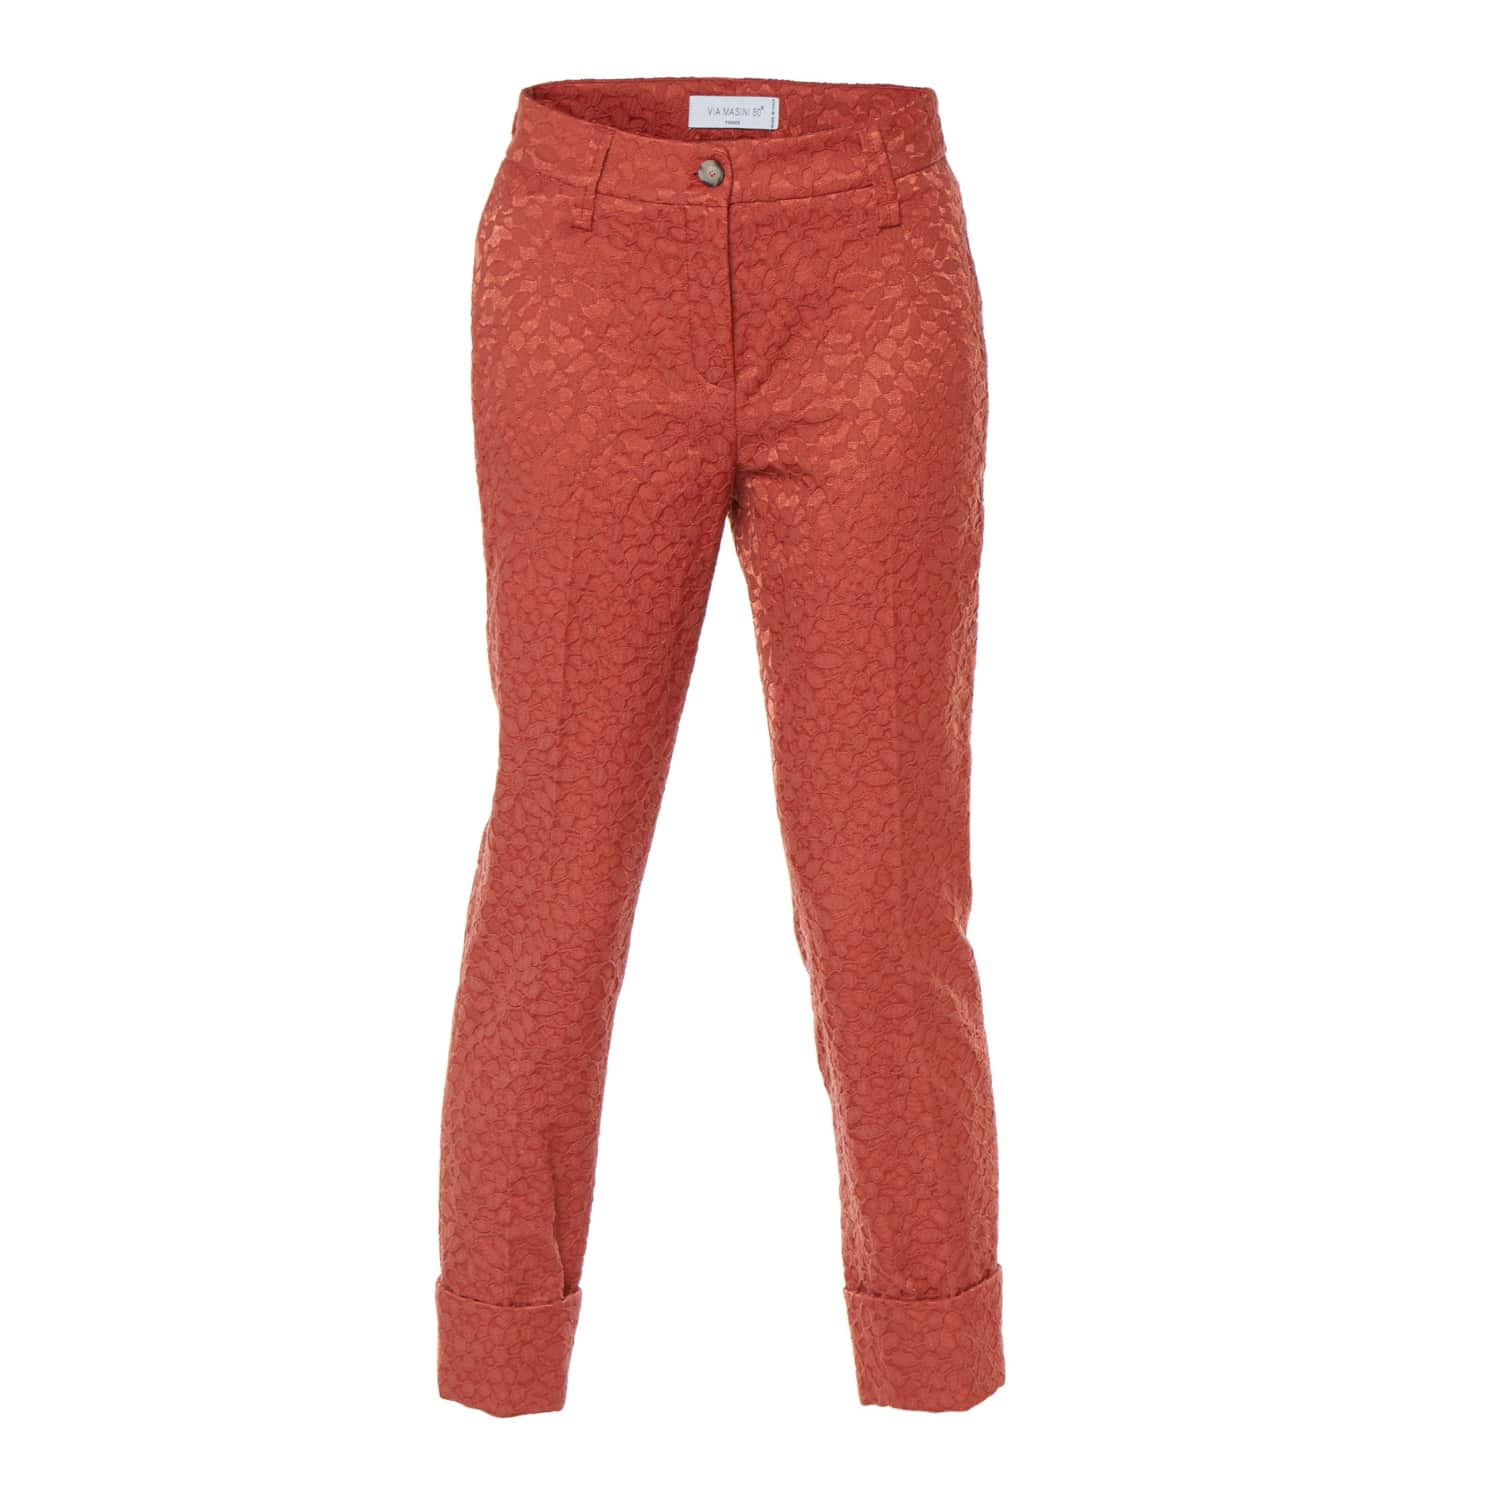 4263cd1b Terracotta Cropped Cotton Jacquard Trousers | Via Masini 80 | Wolf ...